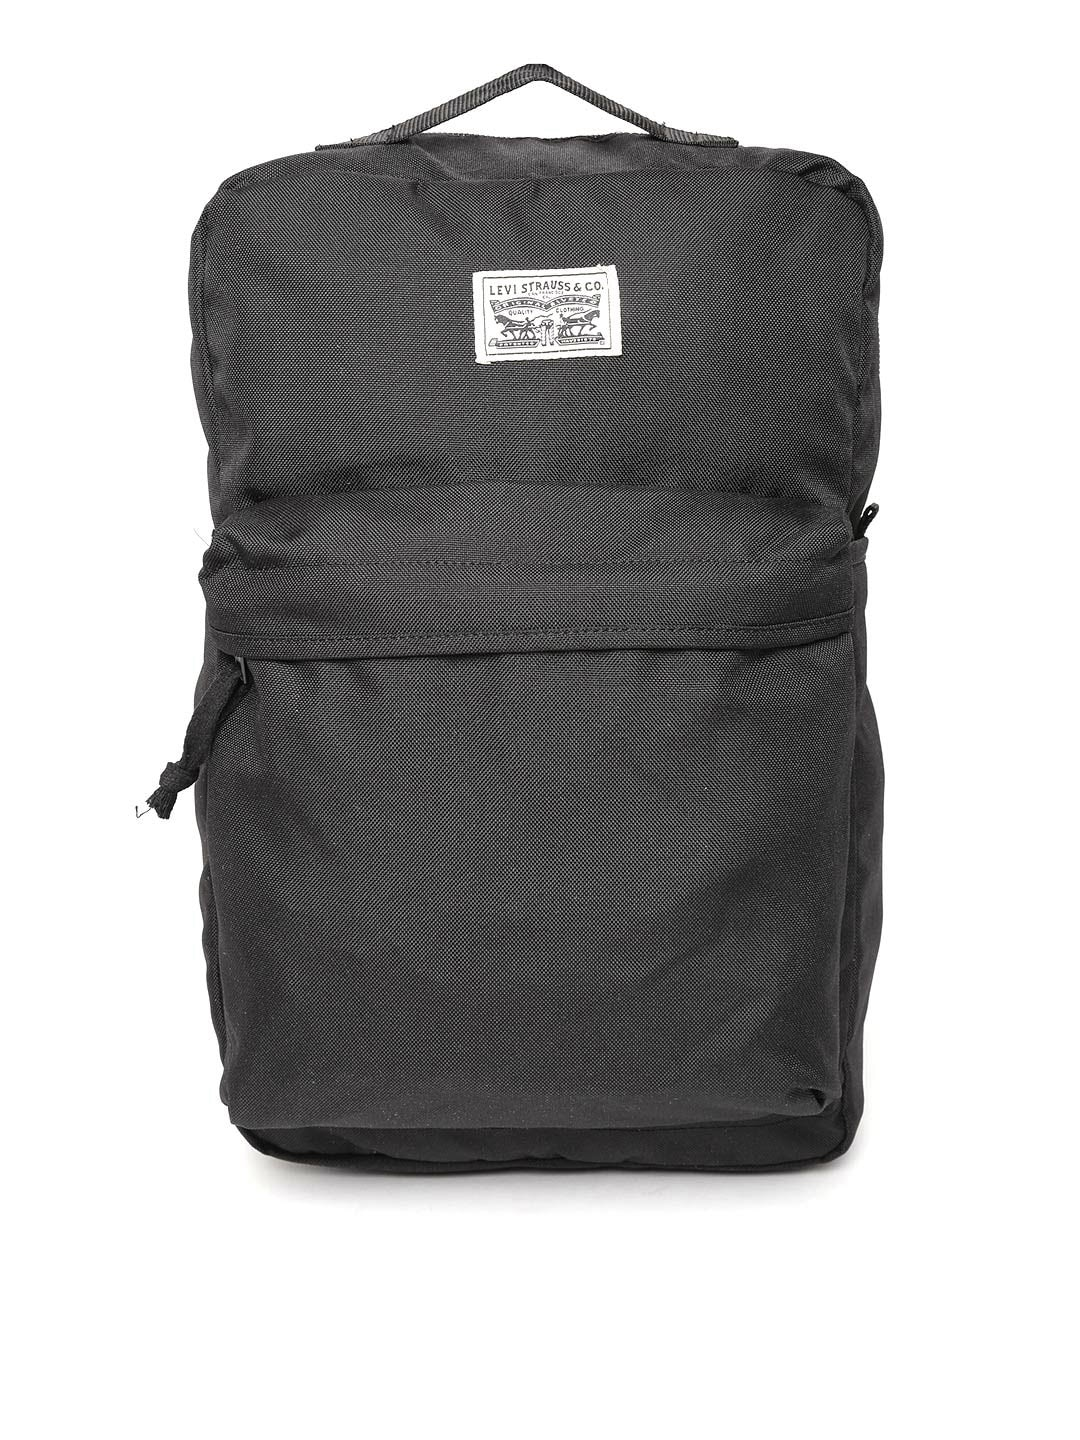 ebc4d129a8b Levis Bags - Buy Levis Bags Online in India